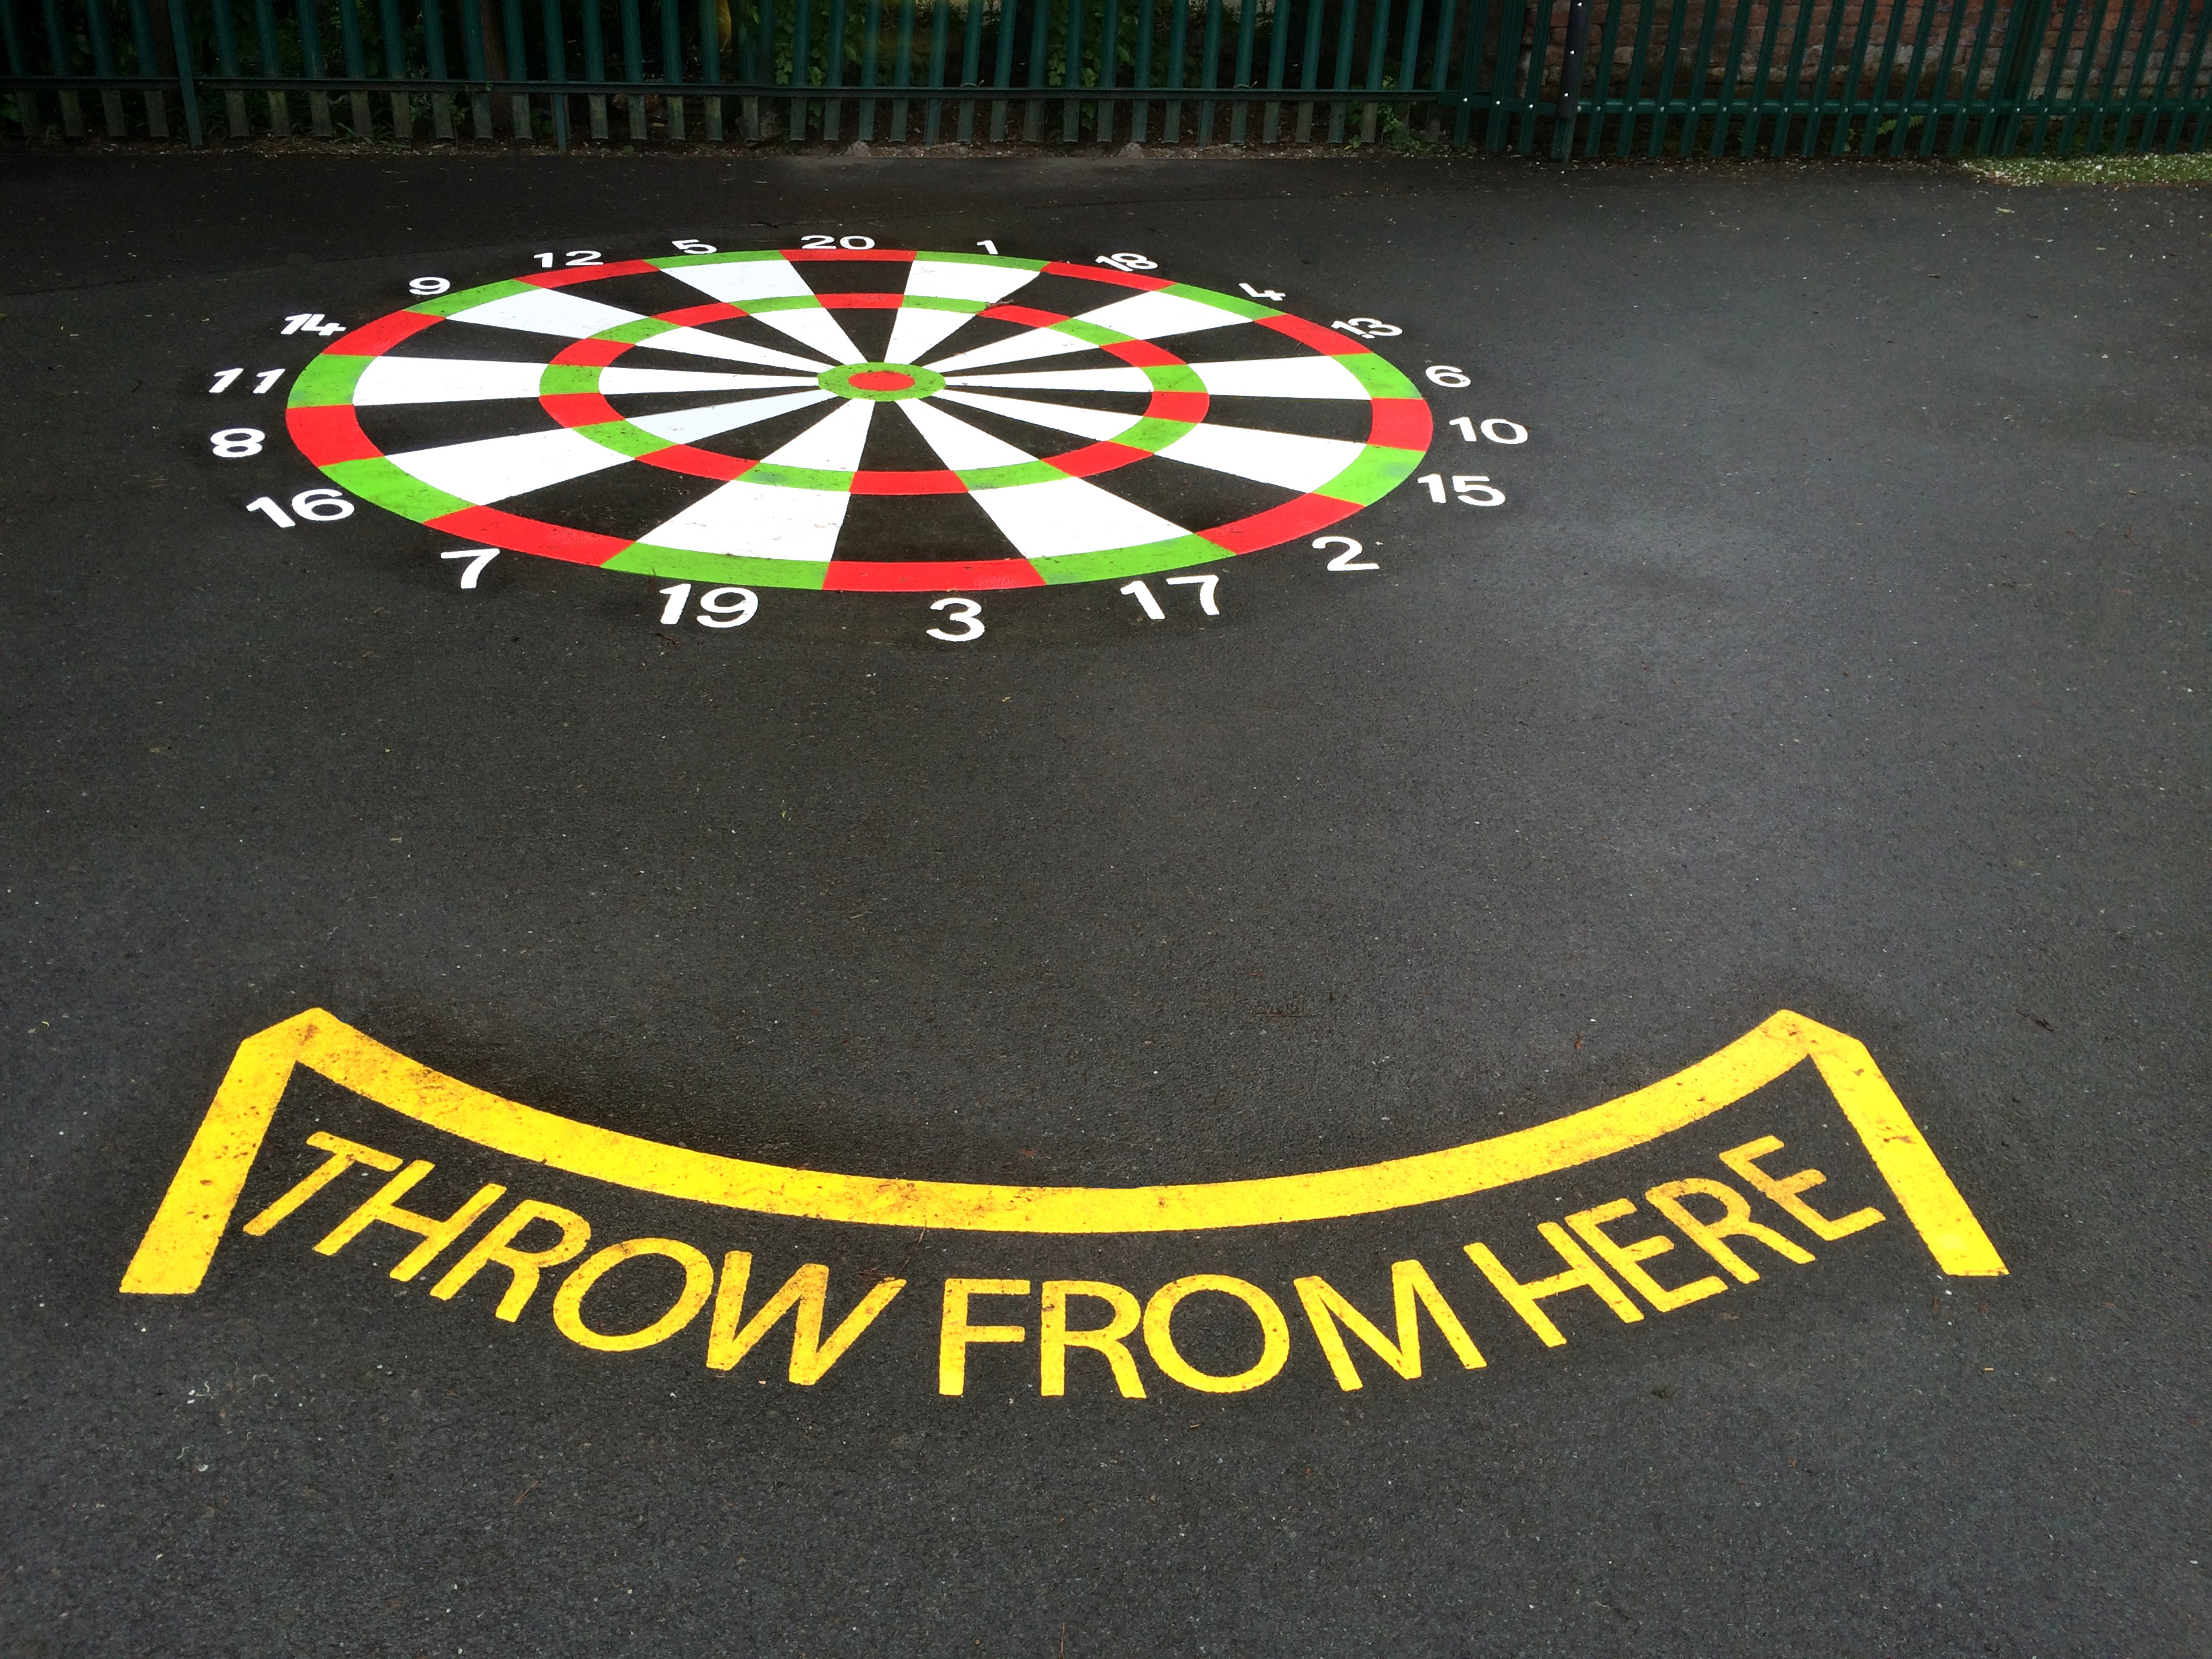 dartboard-playground-marking